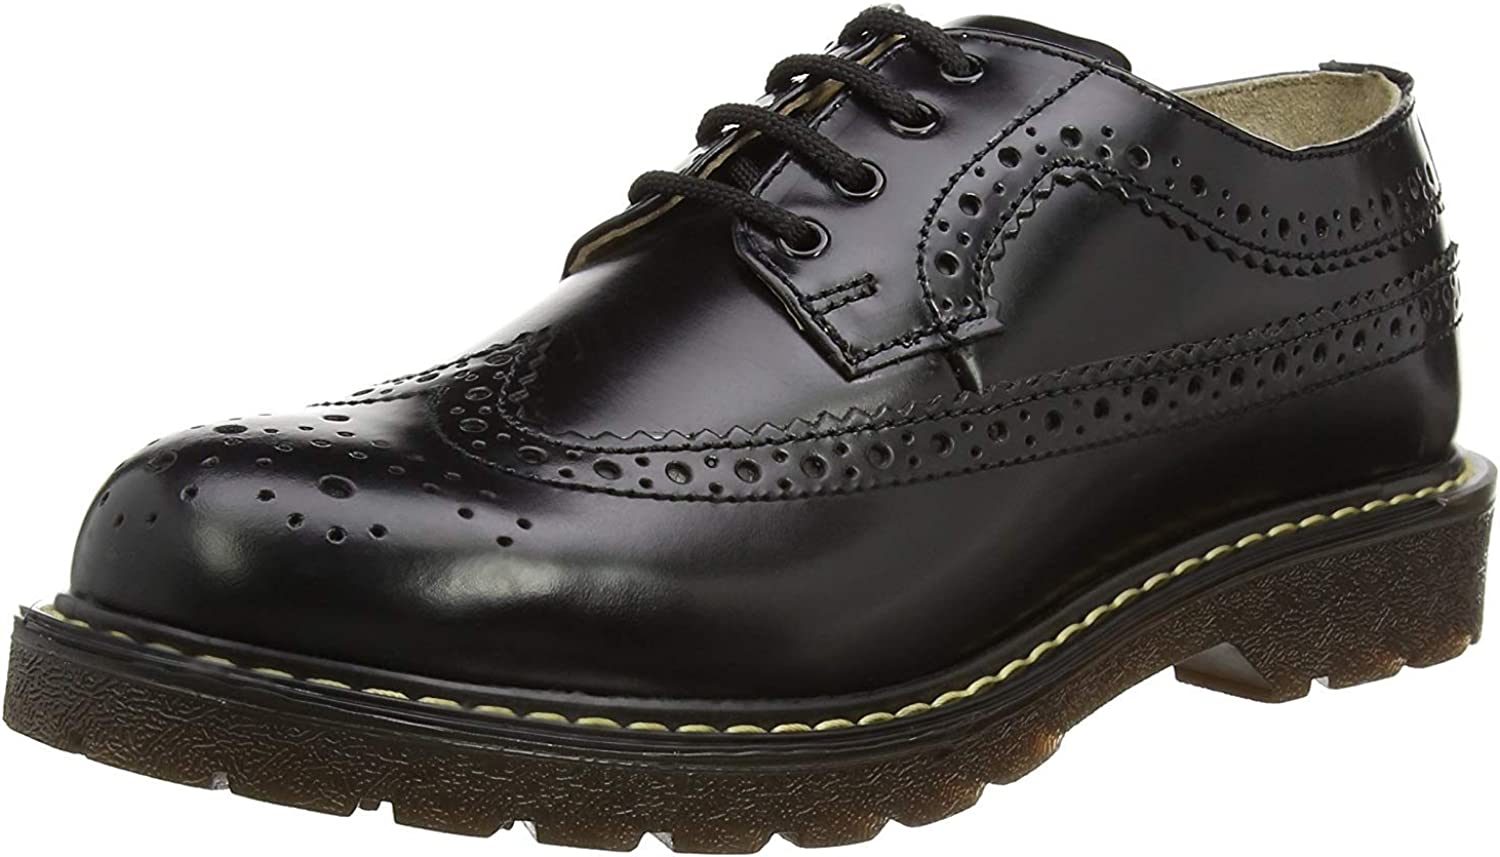 Smart Range Grinders Bertrum Black Unisex American Brogue Casual Real Leather Lace Up shoes